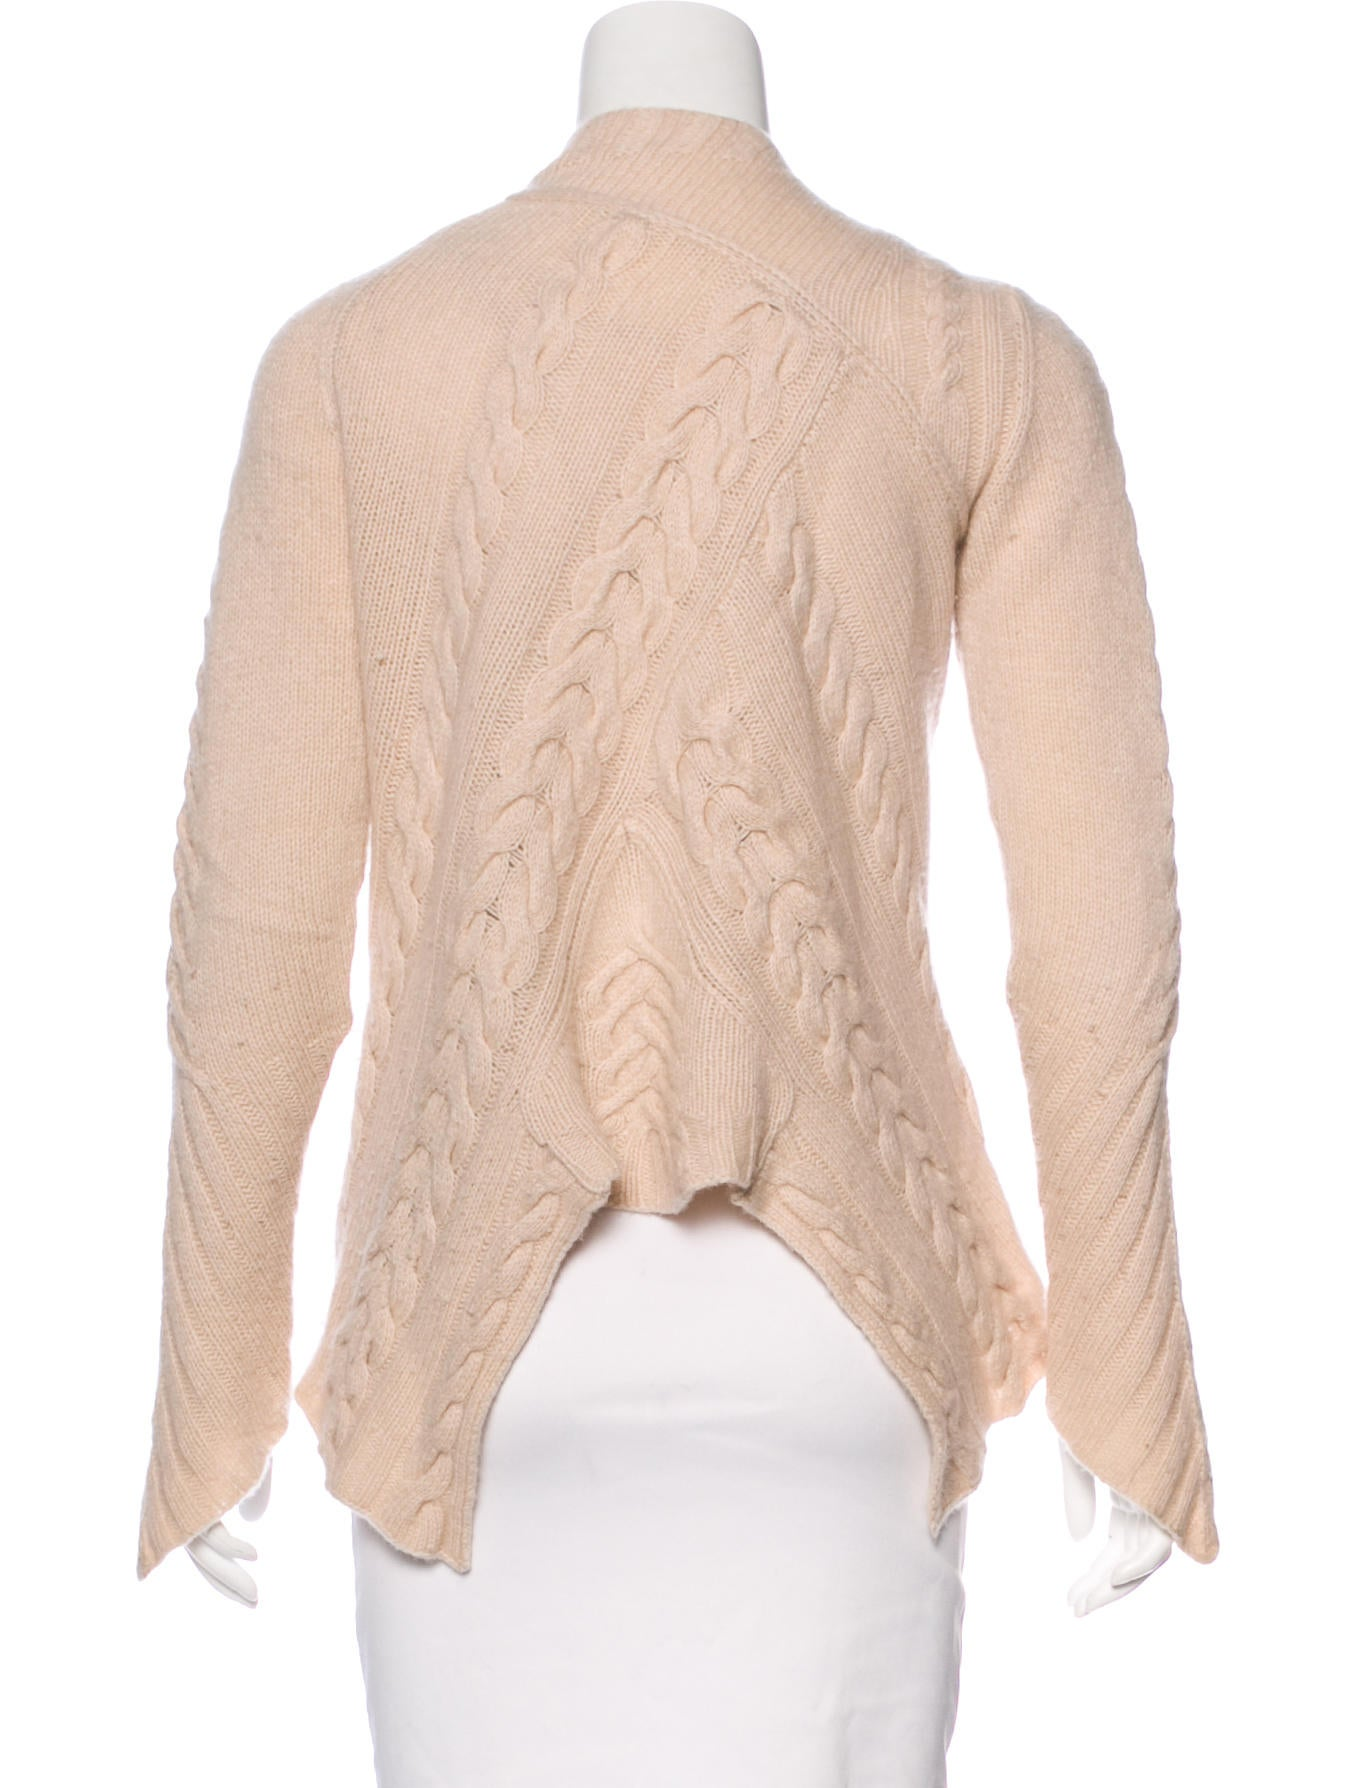 Chan Luu Cashmere Cable Knit Cardigan - Clothing - WCF21164 | The ...